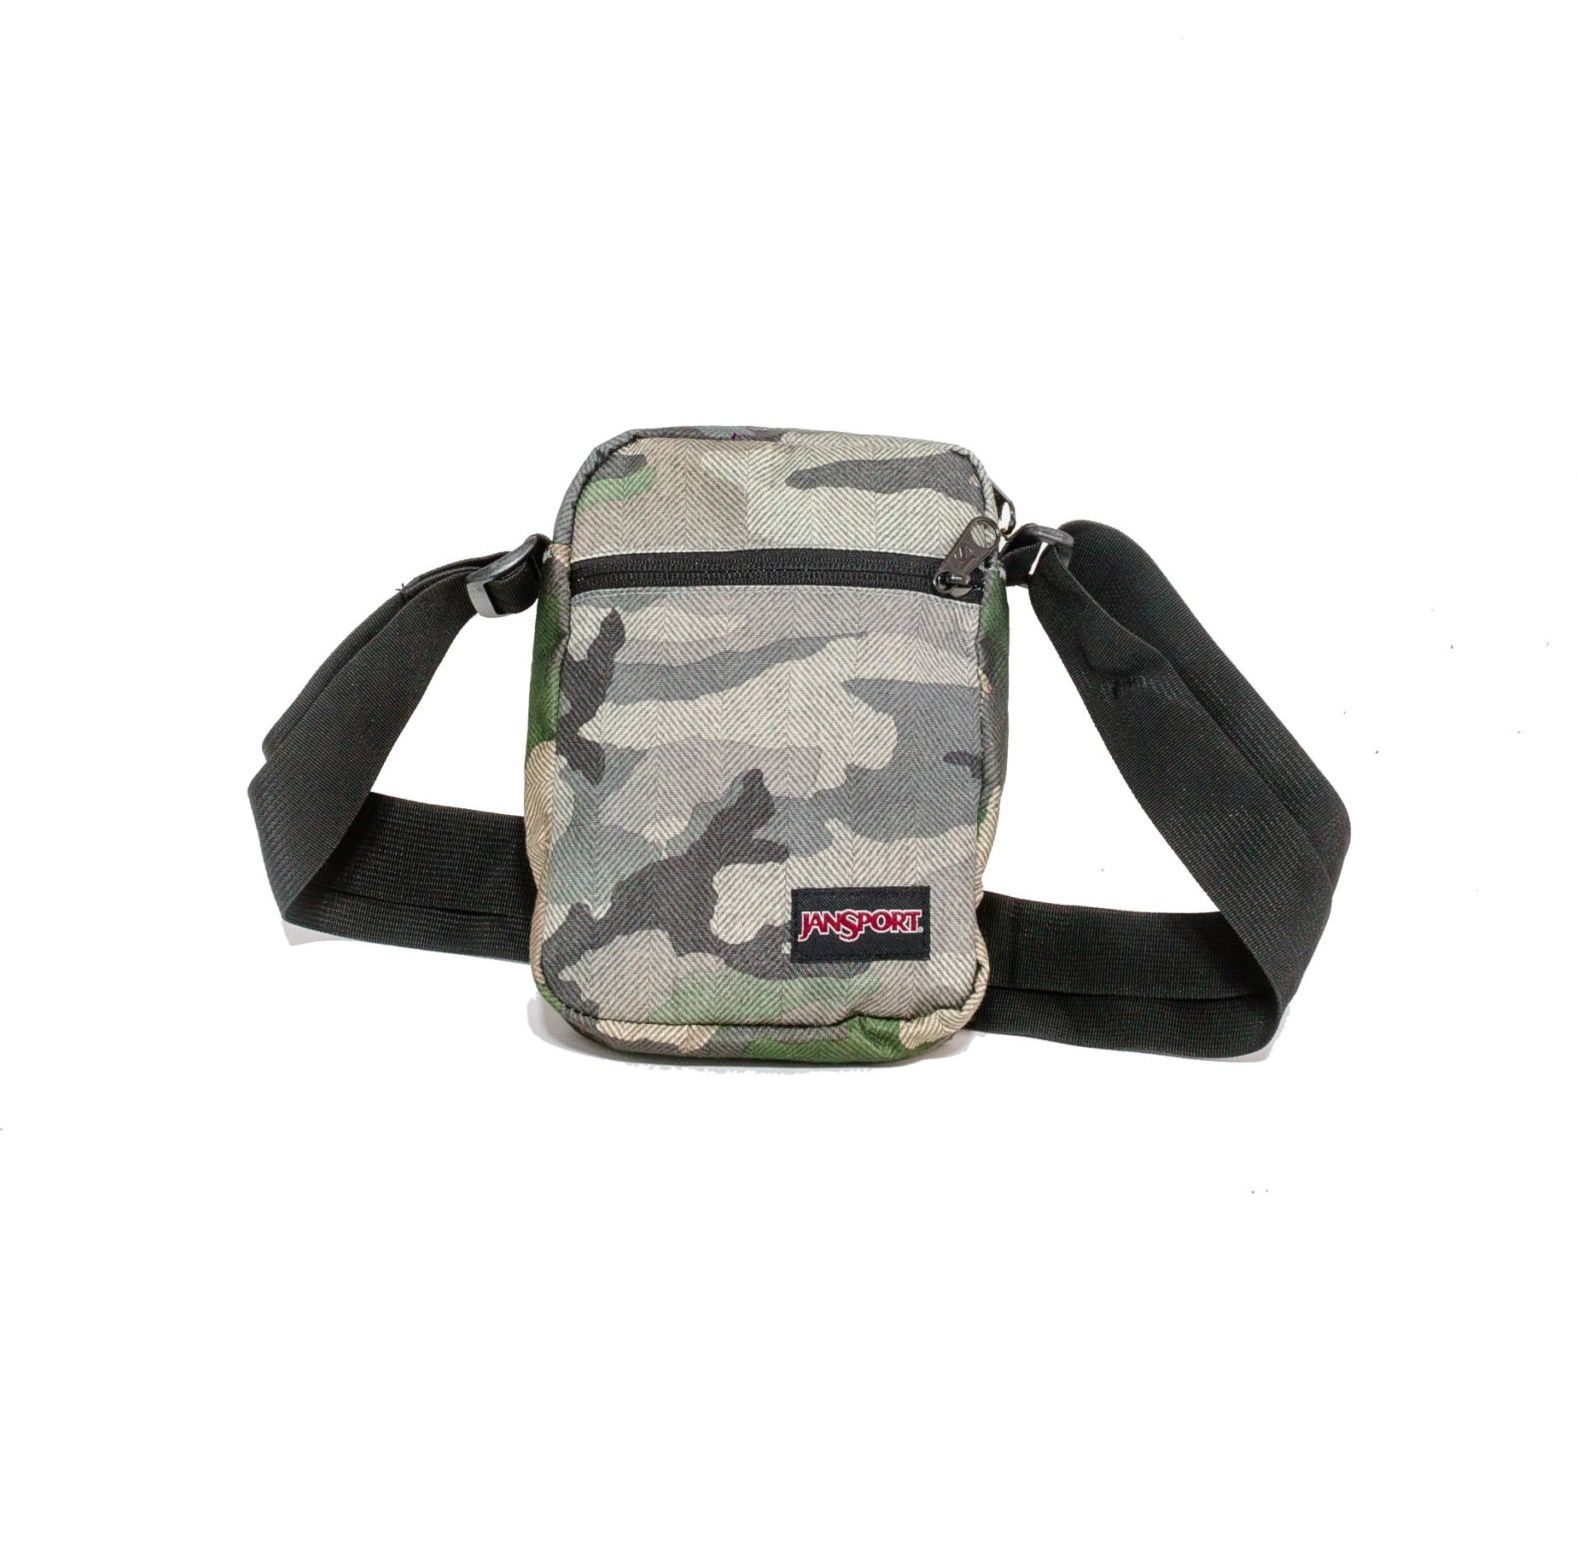 Shoulder Bag Jansport Camo